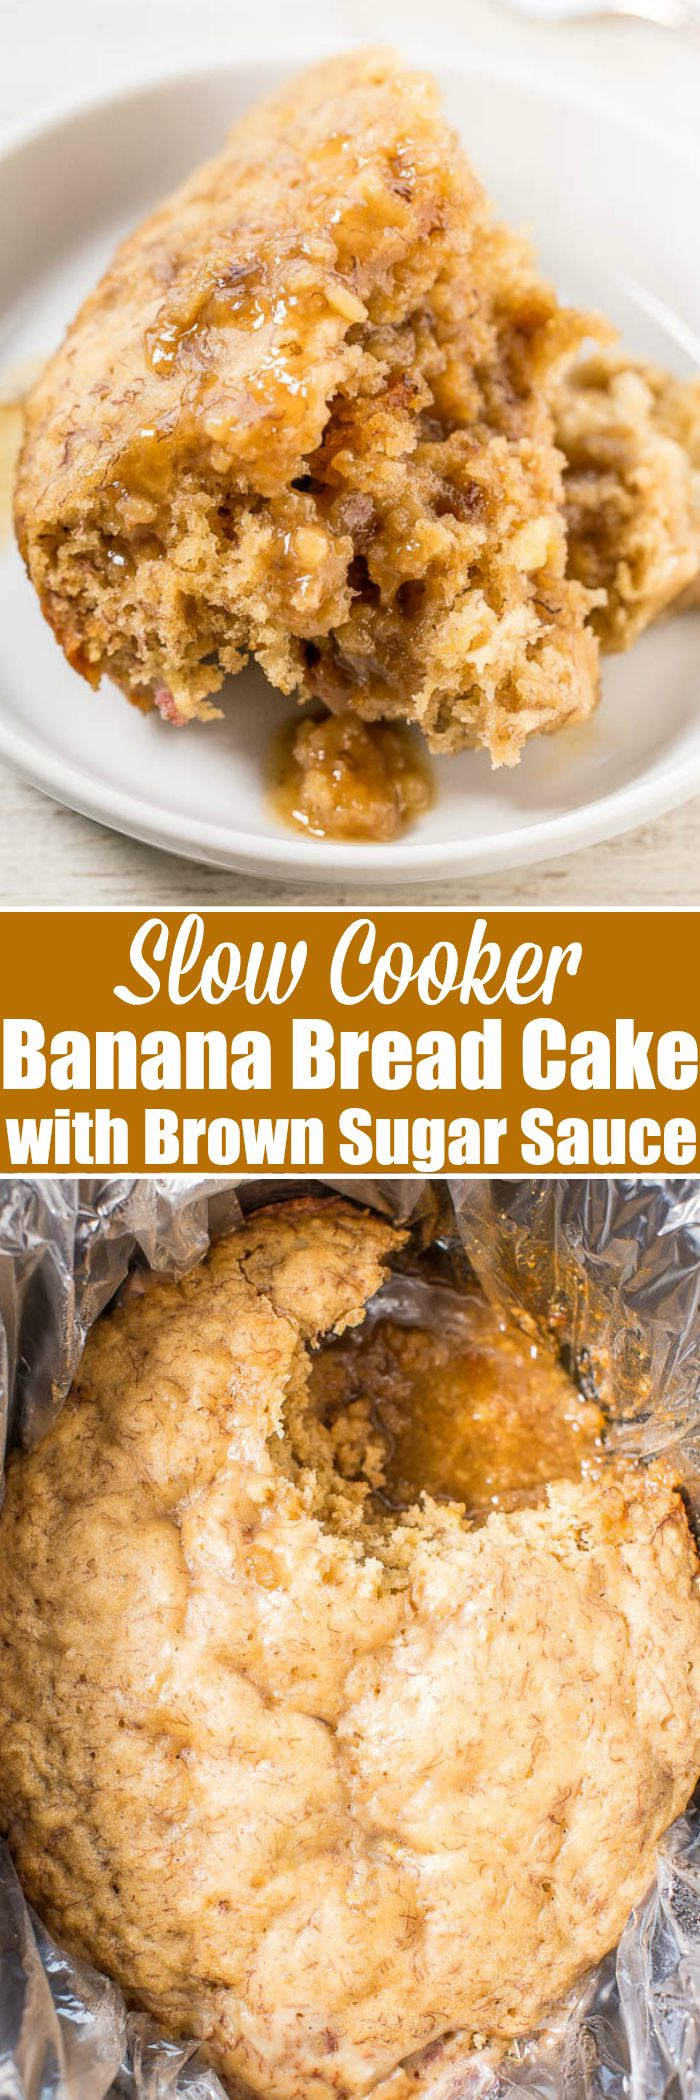 Slow Cooker Banana Bread Cake with Brown Sugar Sauce - Soft, tender banana bread with a caramely, brown sugar sauce that develops while the bread cooks!! If you've never made dessert in your slow cooker, start with this easy recipe!! Perfect for parties!